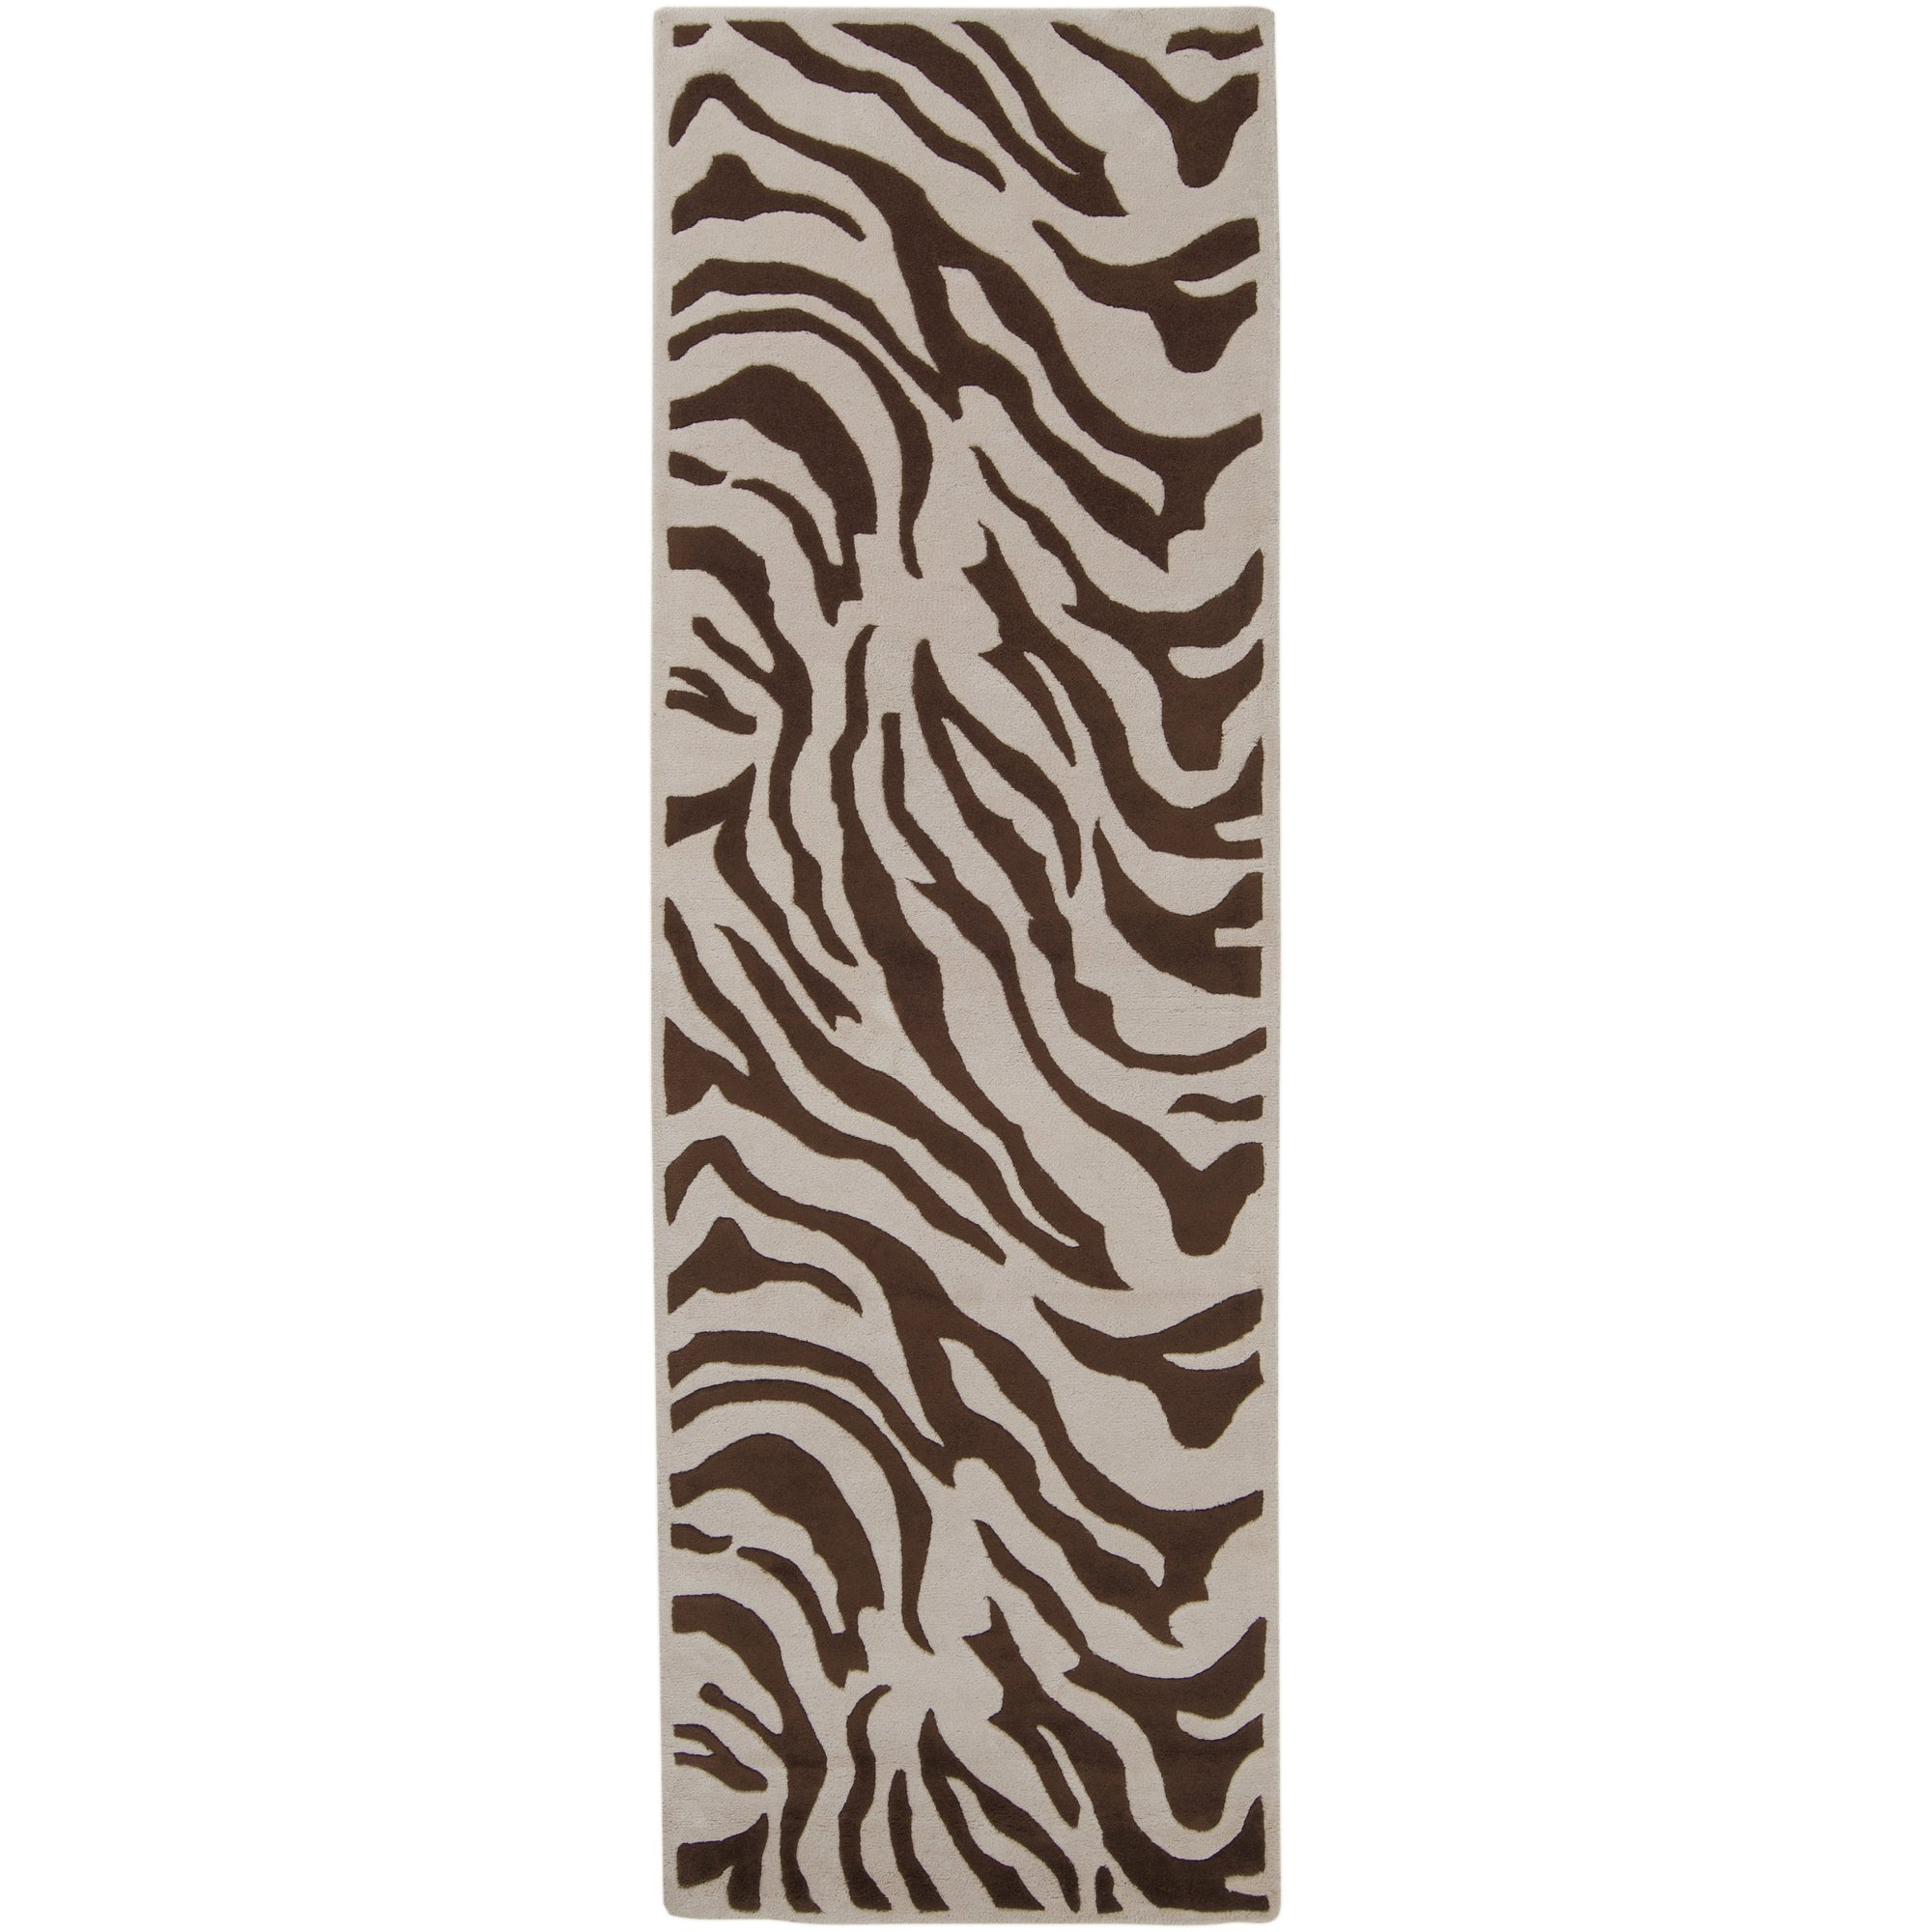 Surya Goa G-169 Contemporary Hand Tufted 100% New Zealand Wool Ivory 2'6'' x 8' Animal Runner